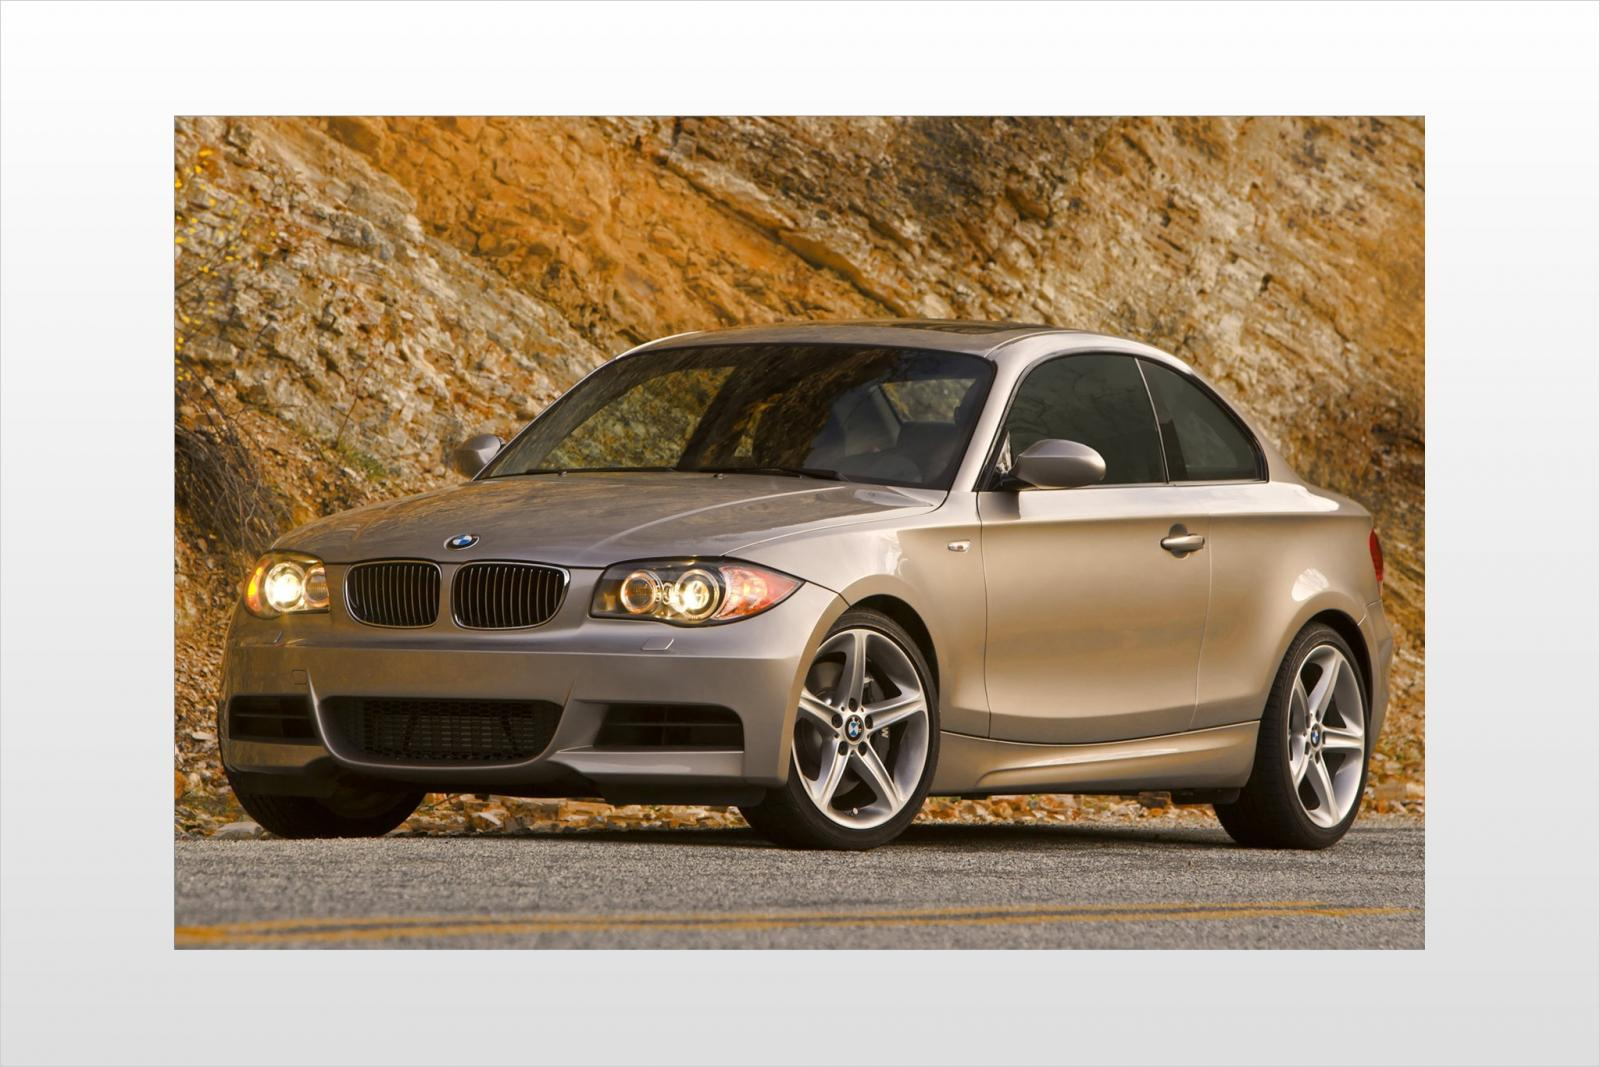 2008 BMW 1 Series  Information and photos  ZombieDrive